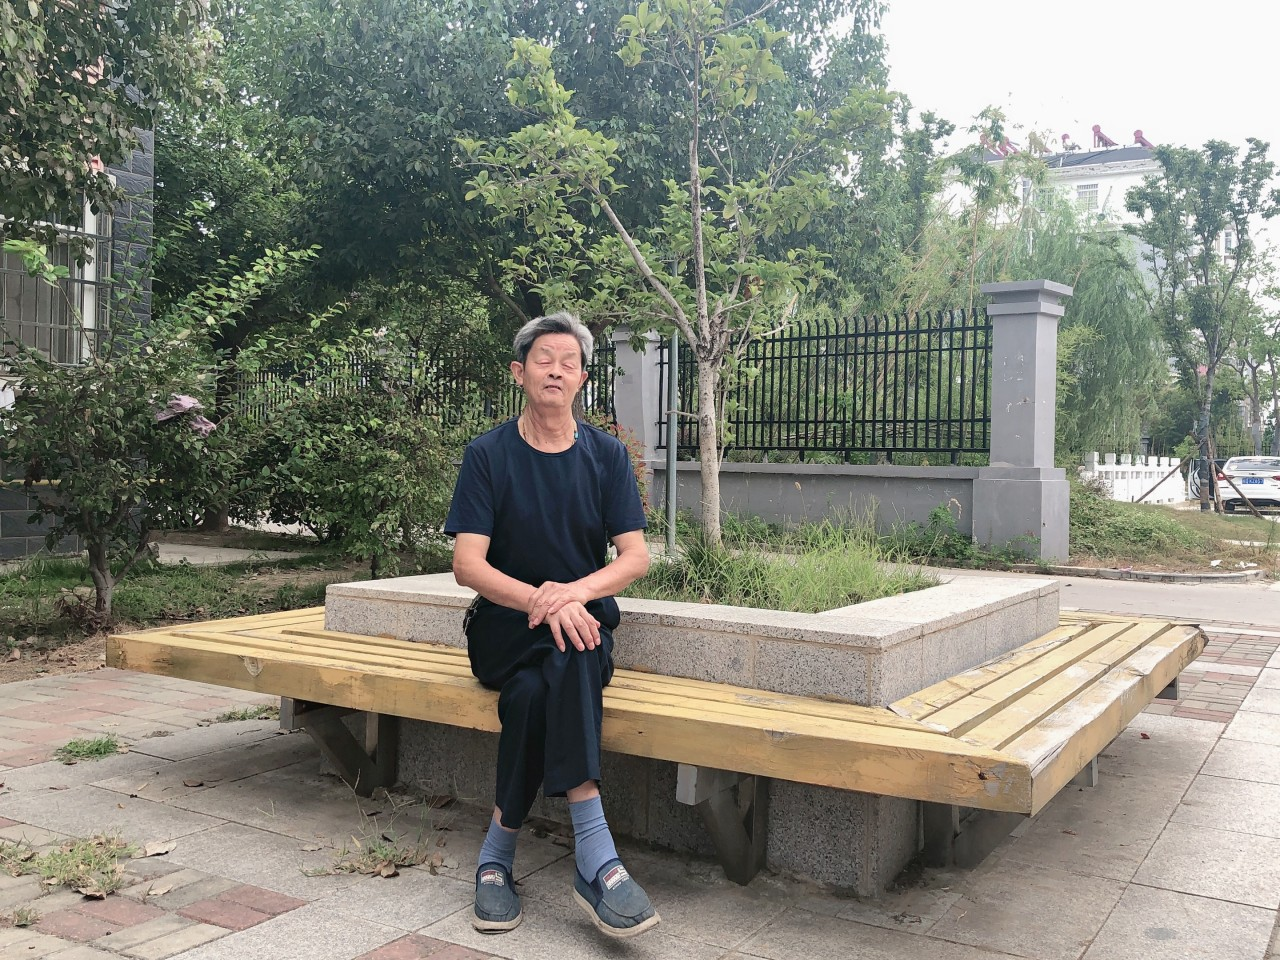 Tang Jinglin photographed at the Zhonglou Housing Estate in the county city of Fengyang, Anhui. He and his wife moved into a public rental unit here in 2013. (Photo: Tang Jinglin)